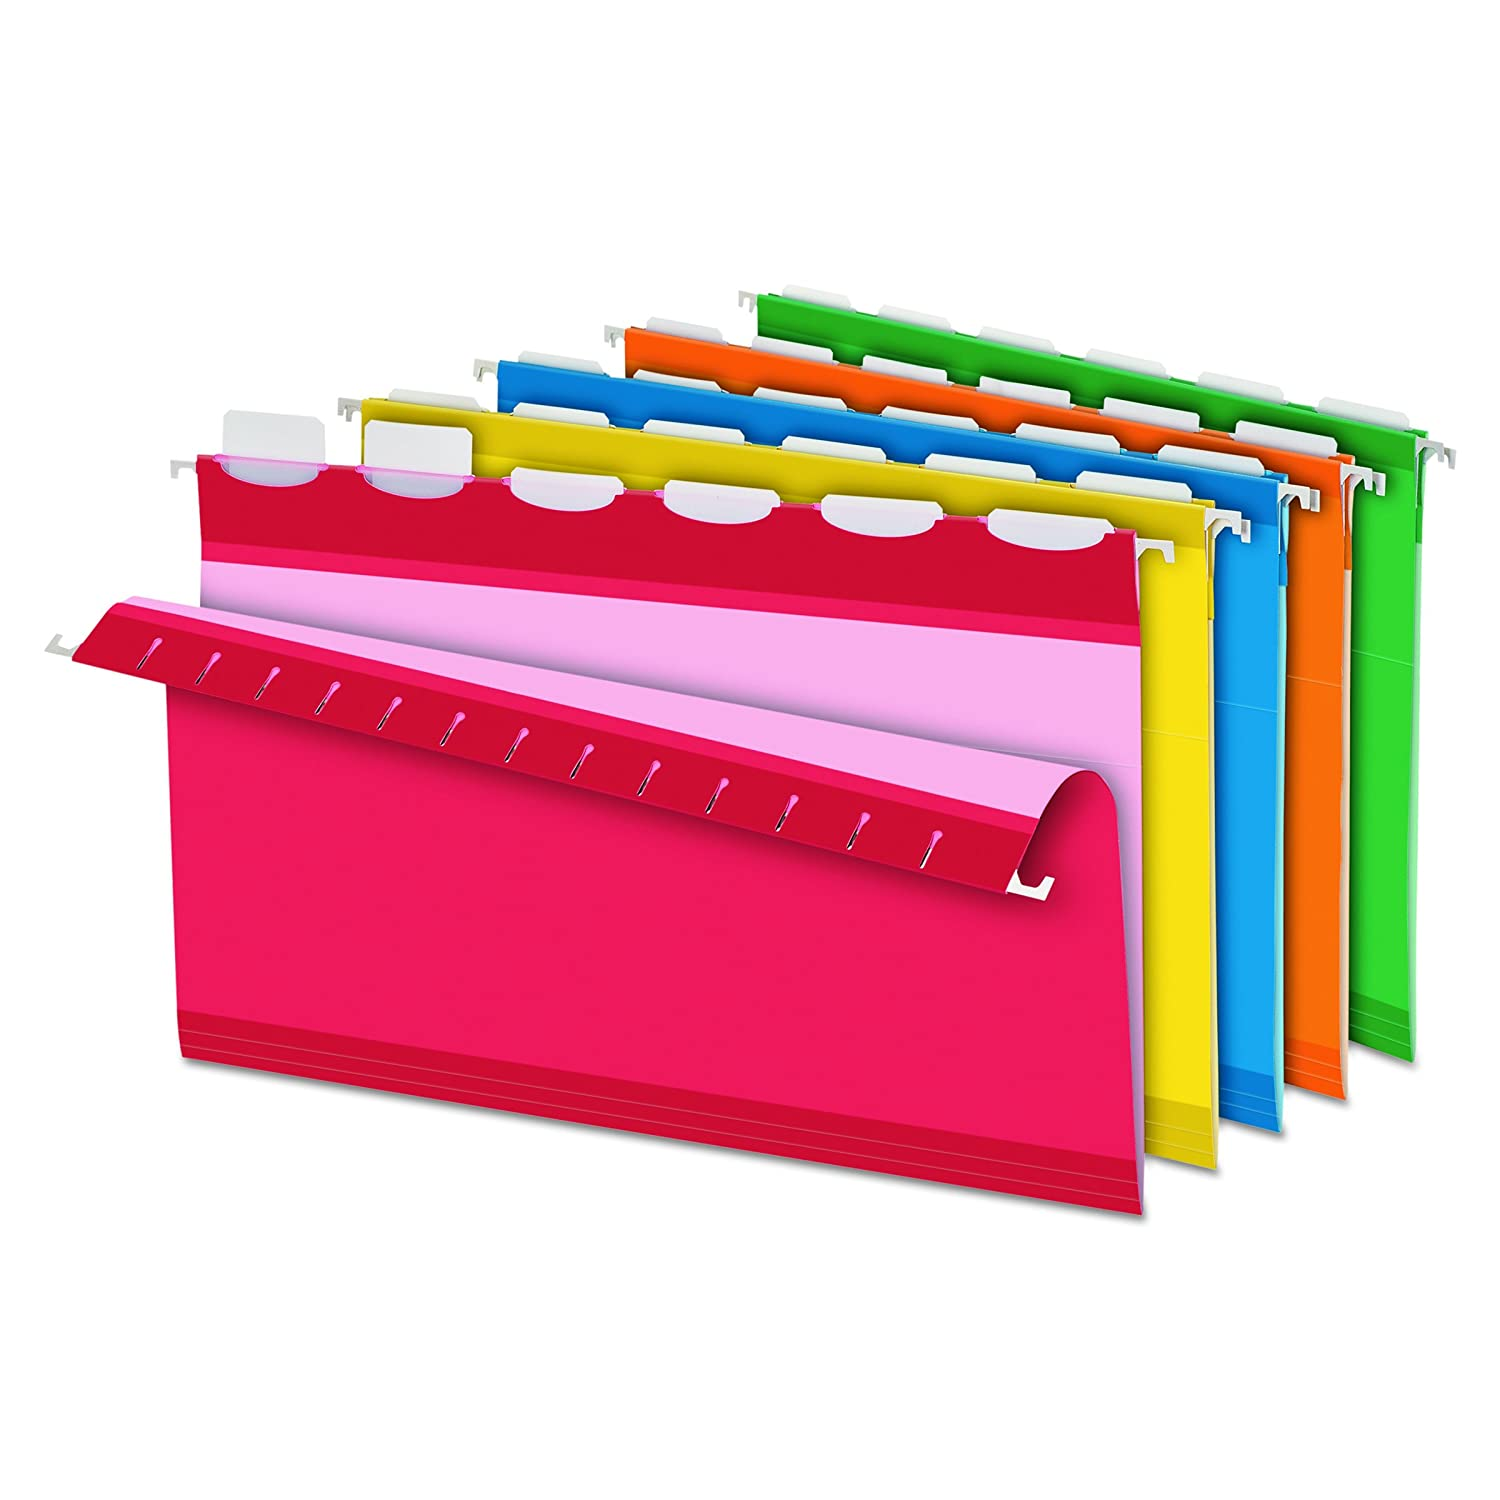 Pendaflex Ready-Tab Hanging File Folder, Assorted Colors, 1/5 Cut Tabs, Letter, 20-Box Esselte Corporation 42891EE